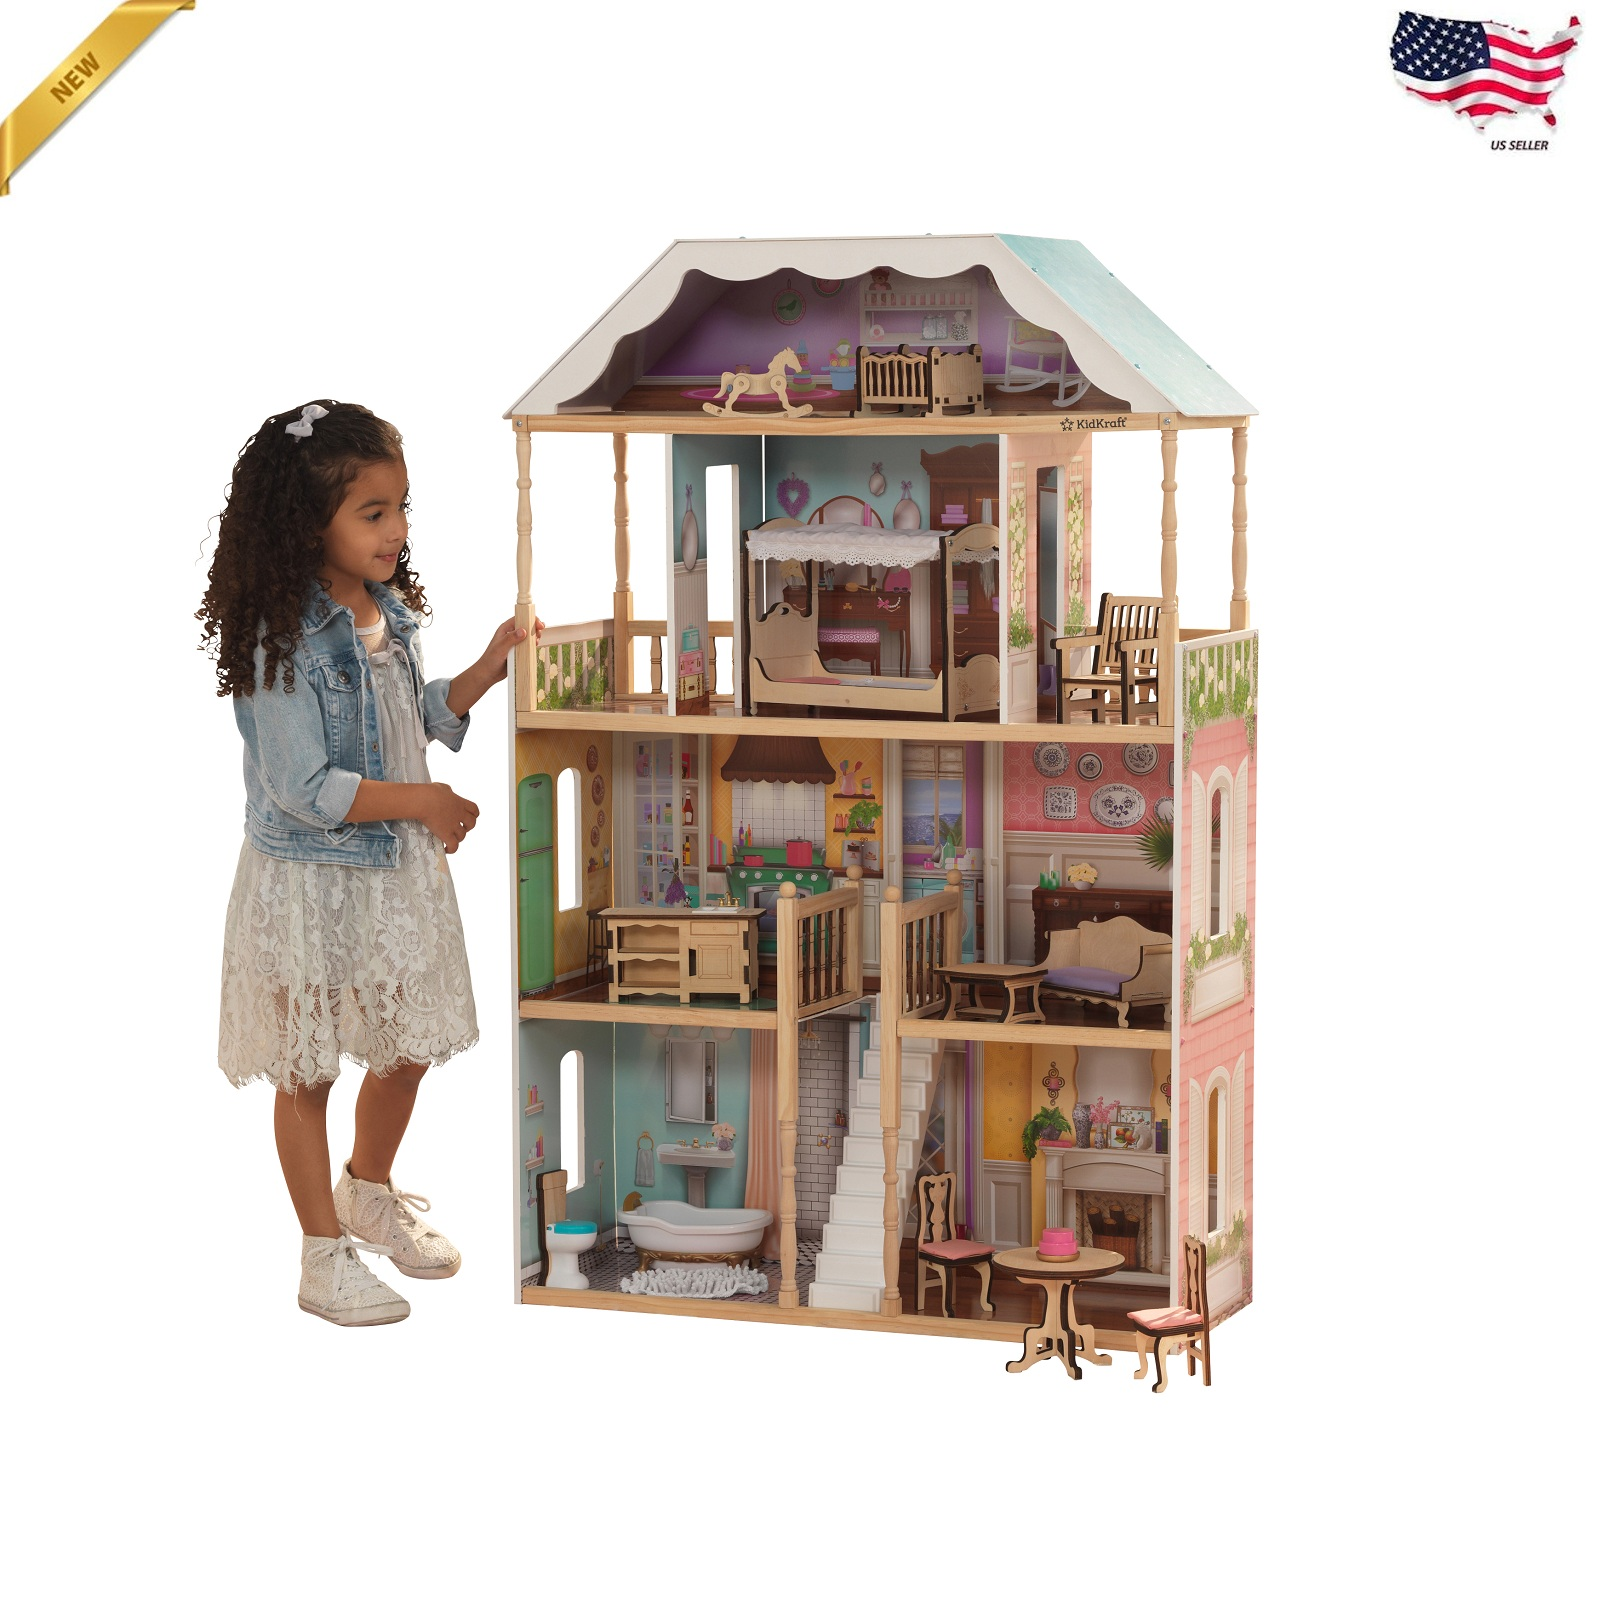 Details About Barbie Size Doll House Girls Dream Play Playhouse Dollhouse Wooden Furniture